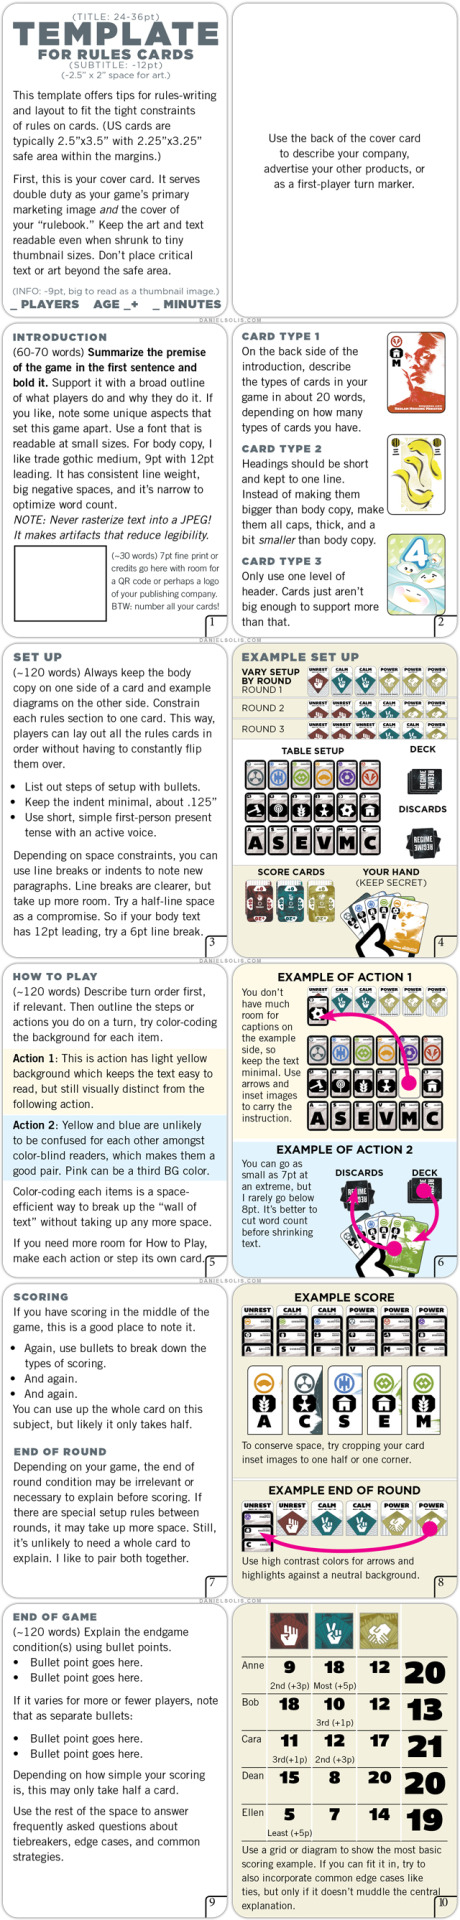 A template for writing and laying out rules cards for DriveThruCards products, via Daniel Solis (@DanielSolis)